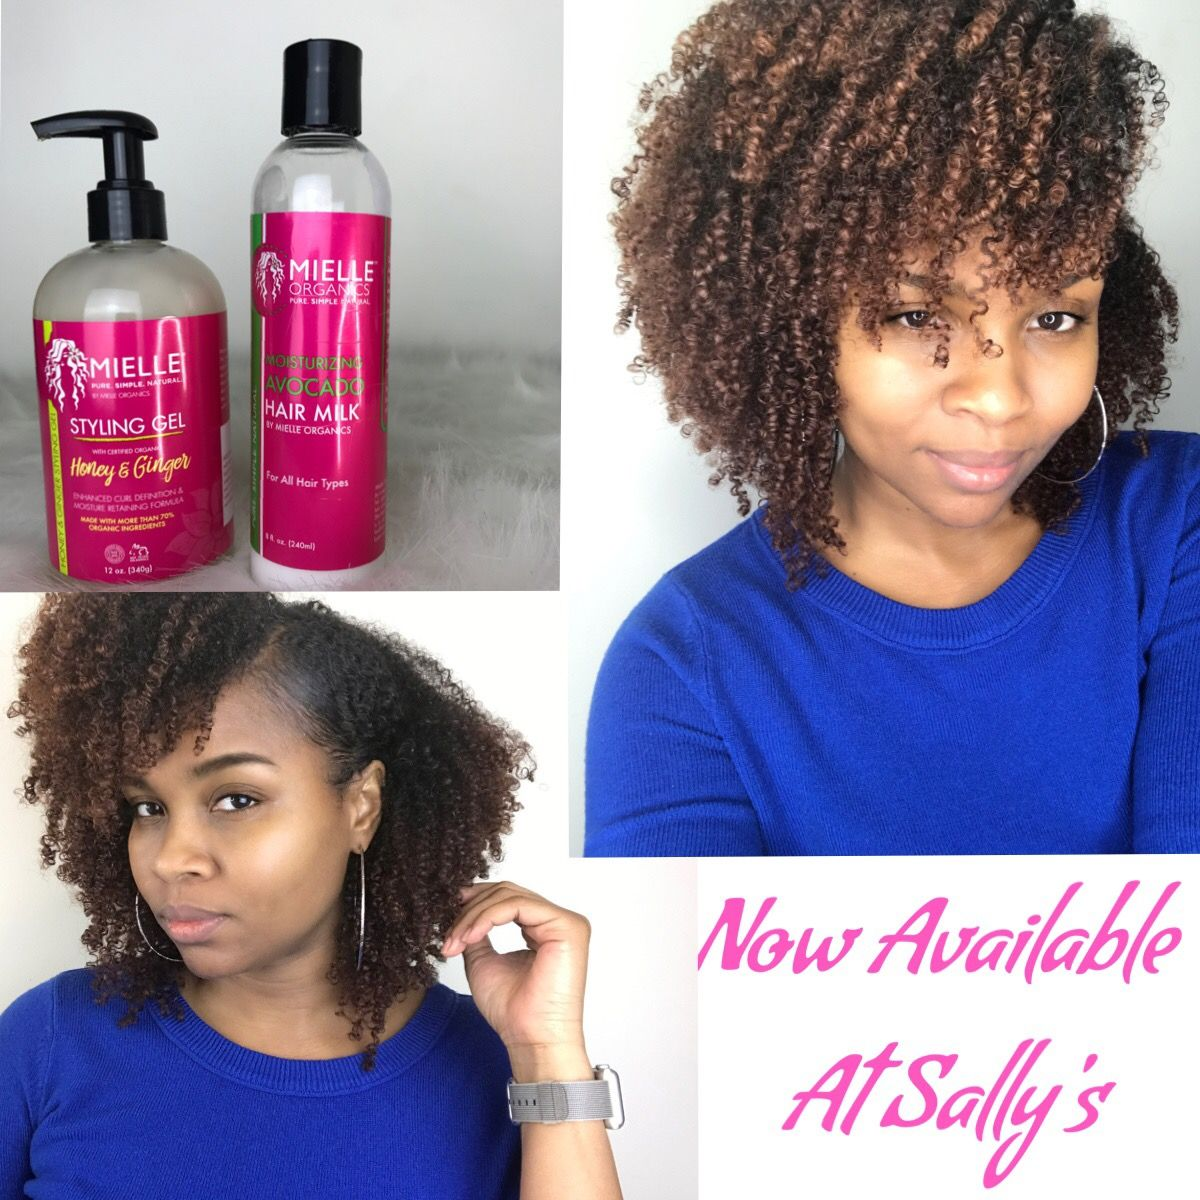 Wash and go using Mielle Organics Avocado Hair Milk and Honey & Ginger gel. Now available at Sally Beauty Supply Store.